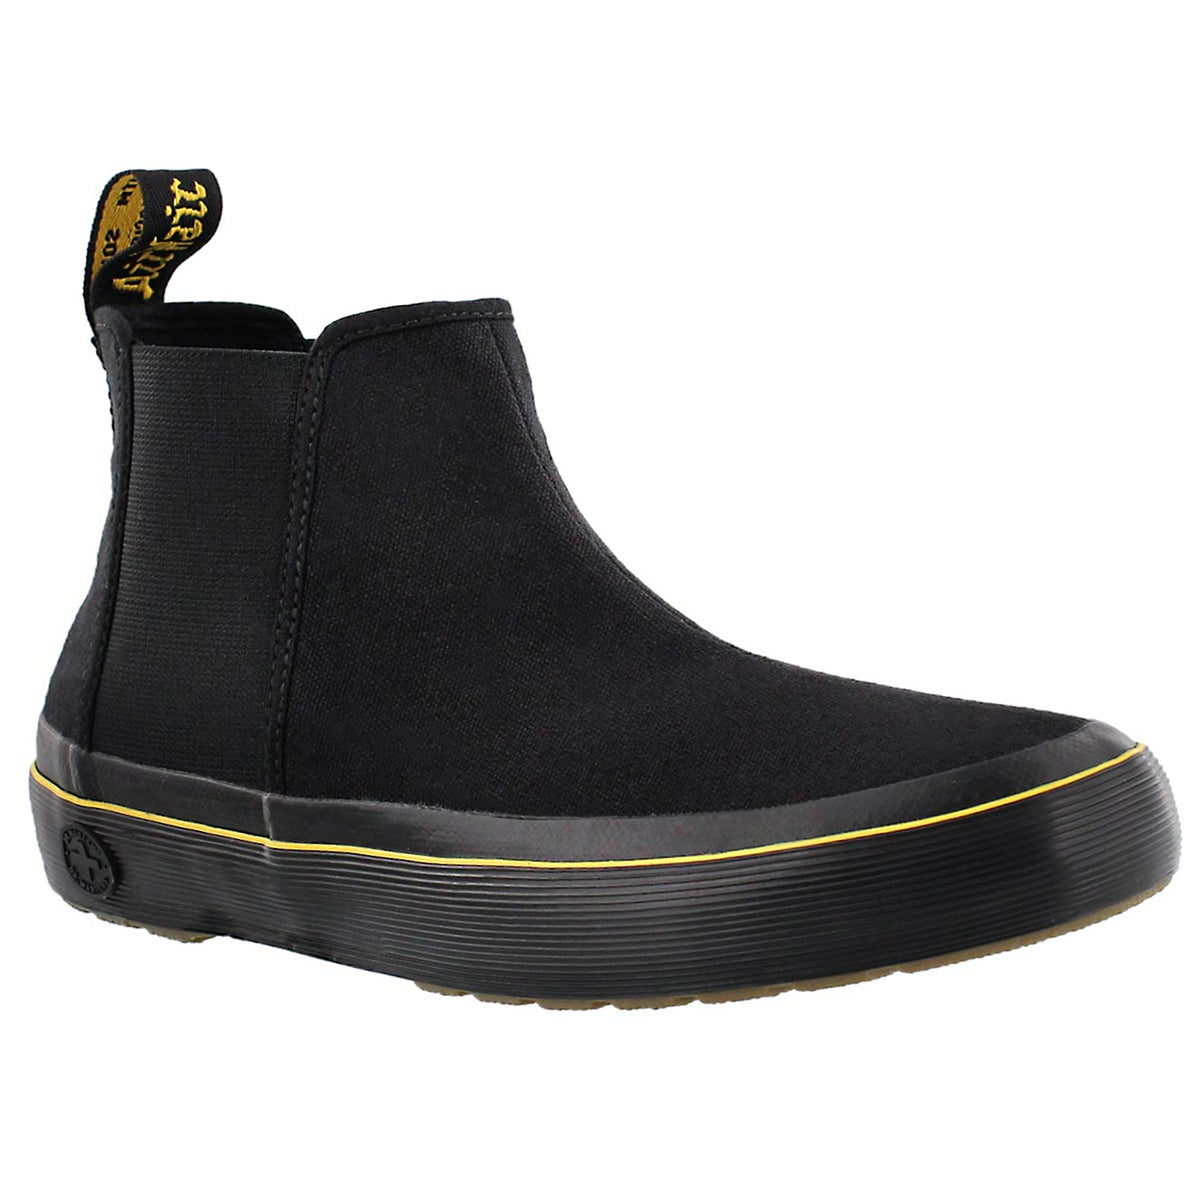 Women's PHOEBE black pull on chelsea boots